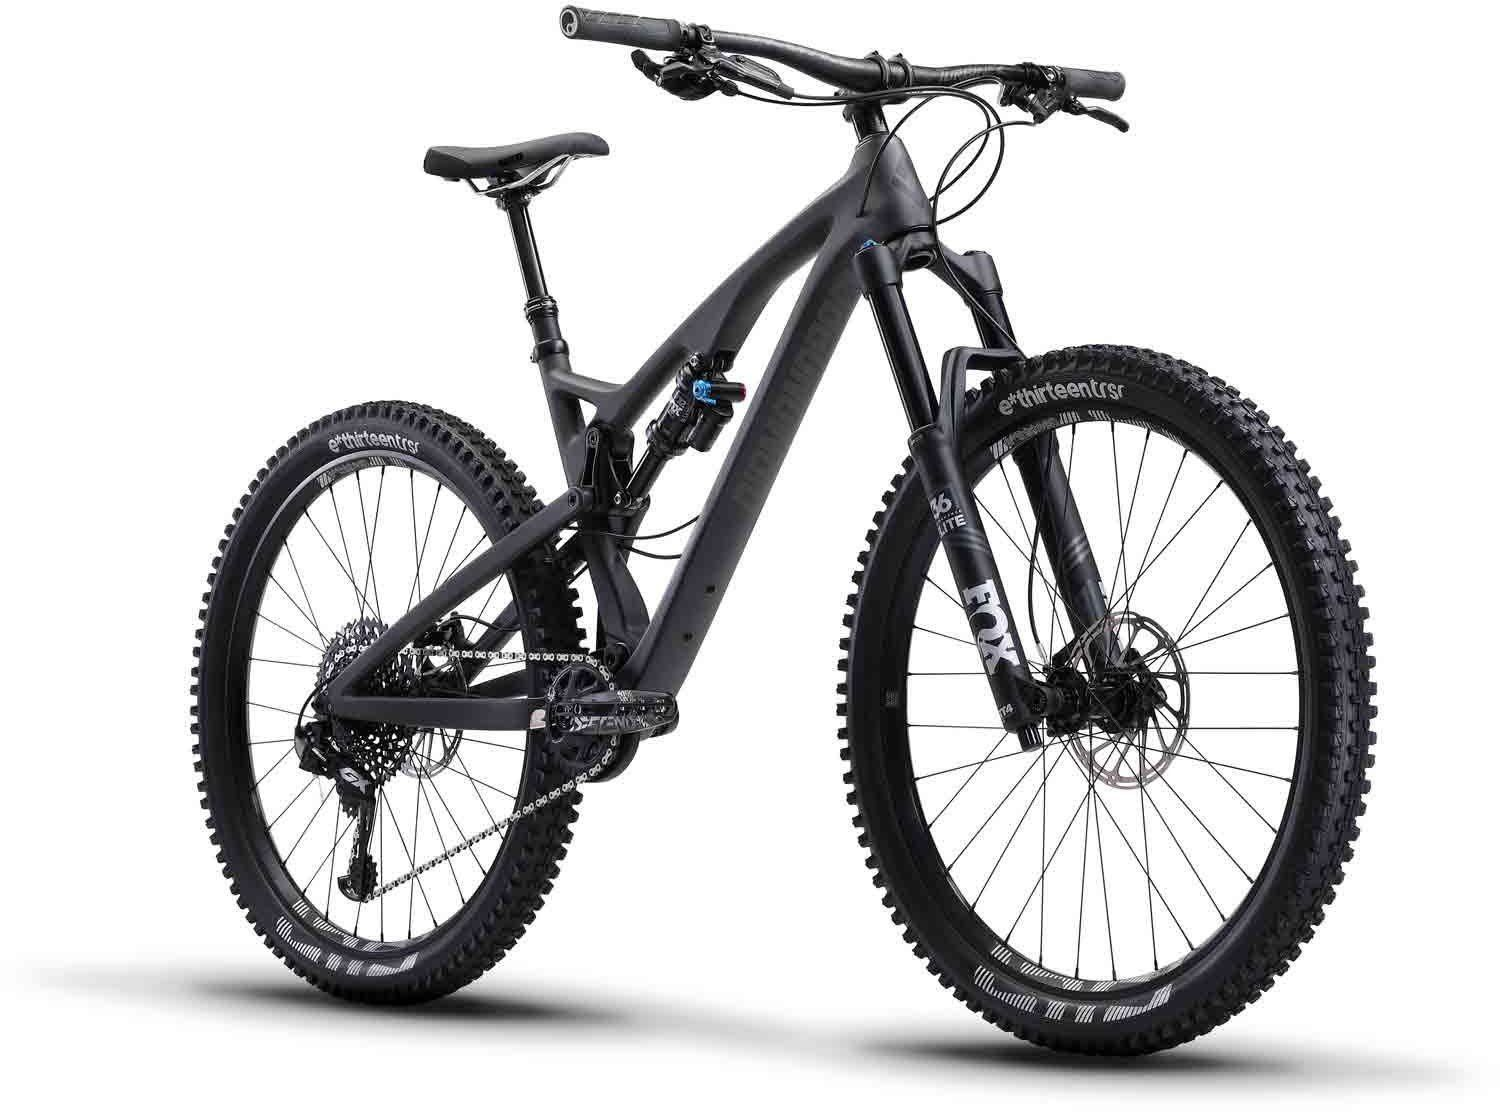 Release 5c Carbon With Images Full Suspension Mountain Bike Full Suspension Bike